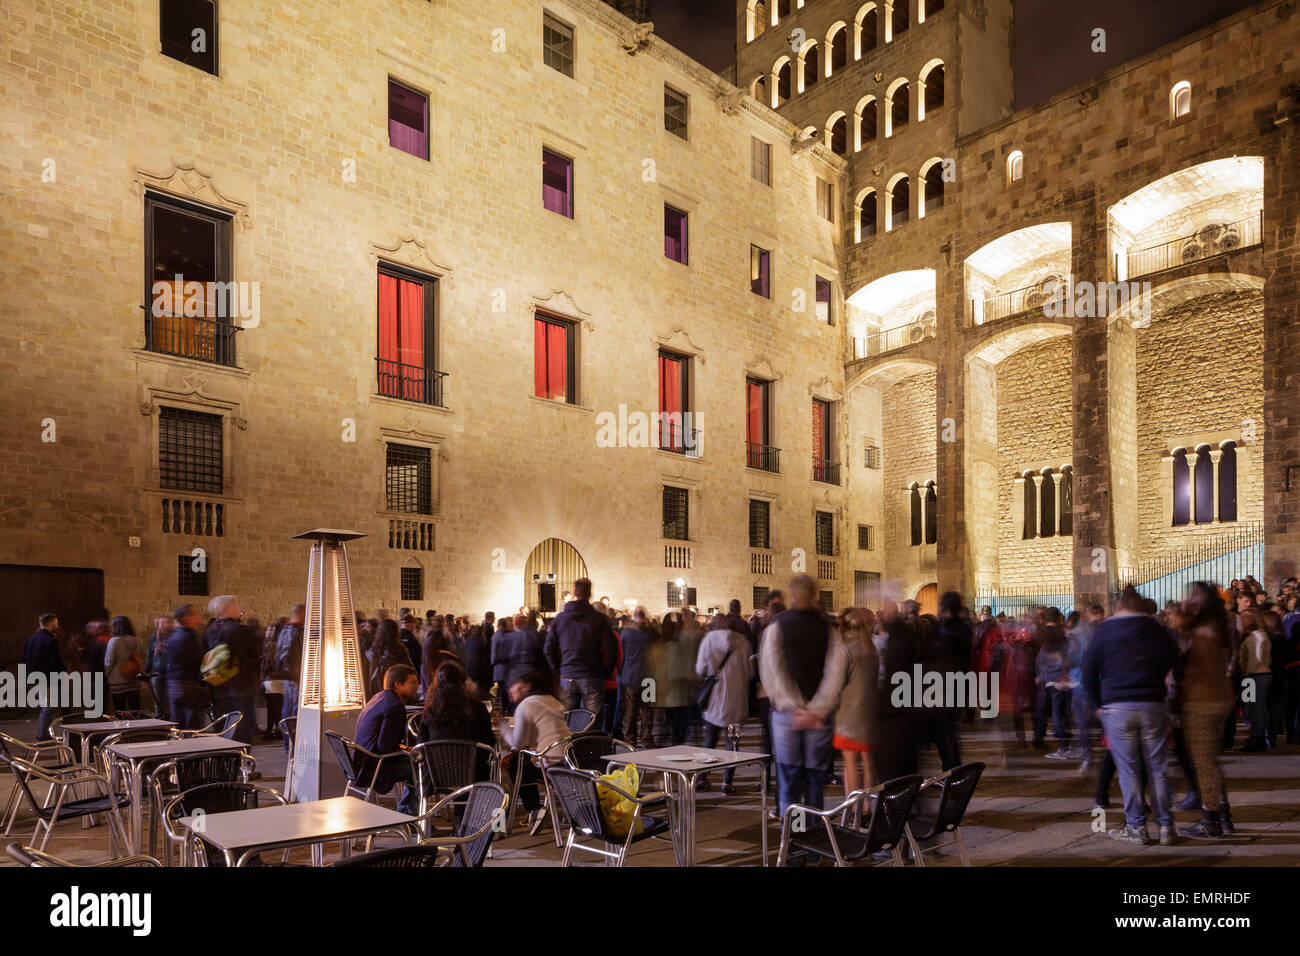 crowds watch an evening concert in the Plaça del Rei, Barcelona, Catalonia, Spain - Stock Image